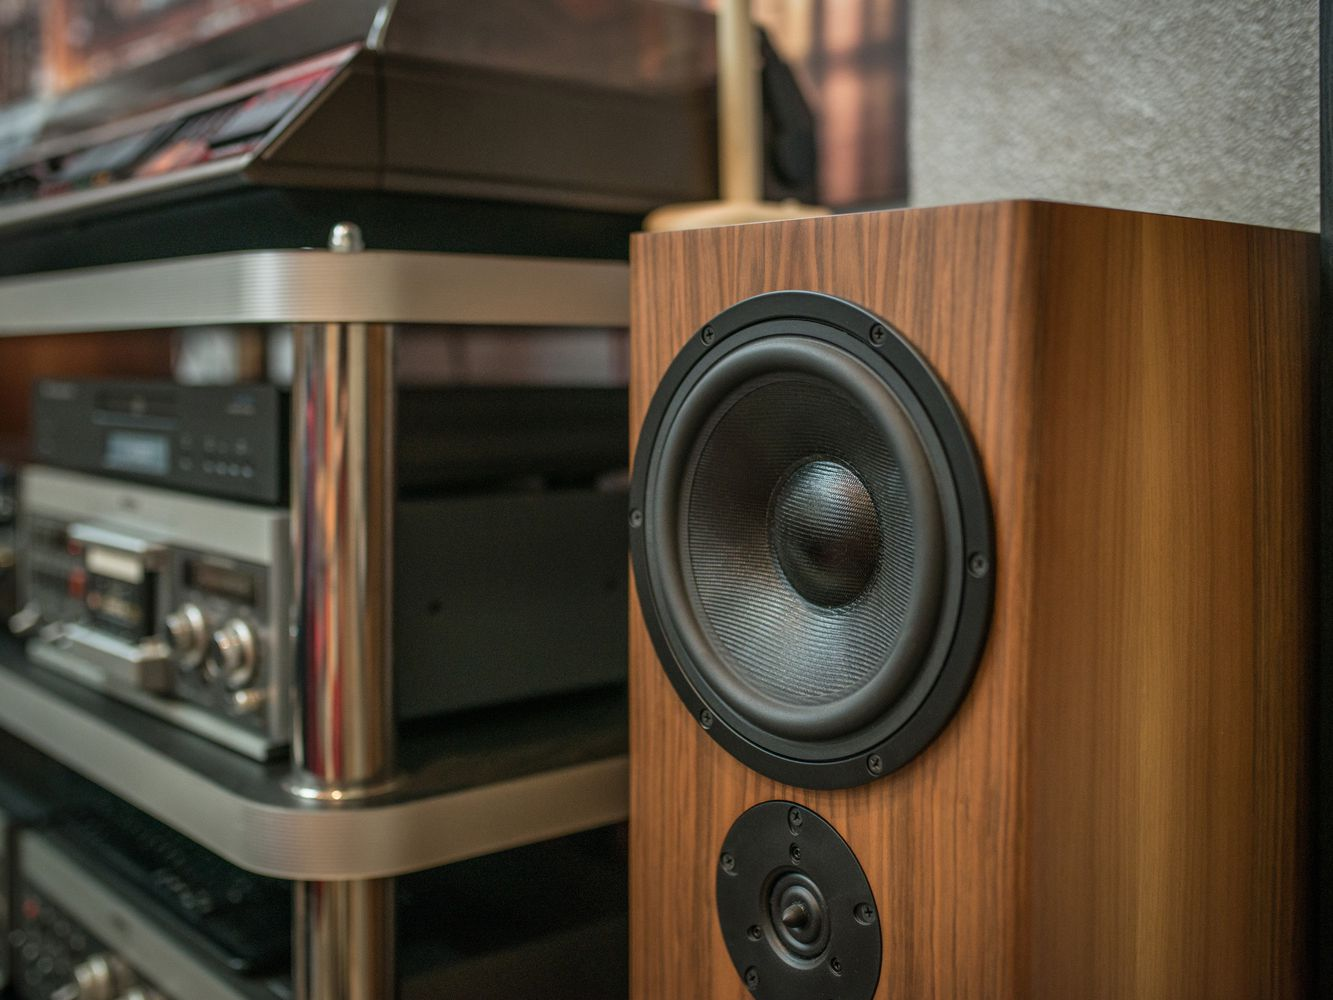 Troubleshooting a Home Theater System Loudspeaker